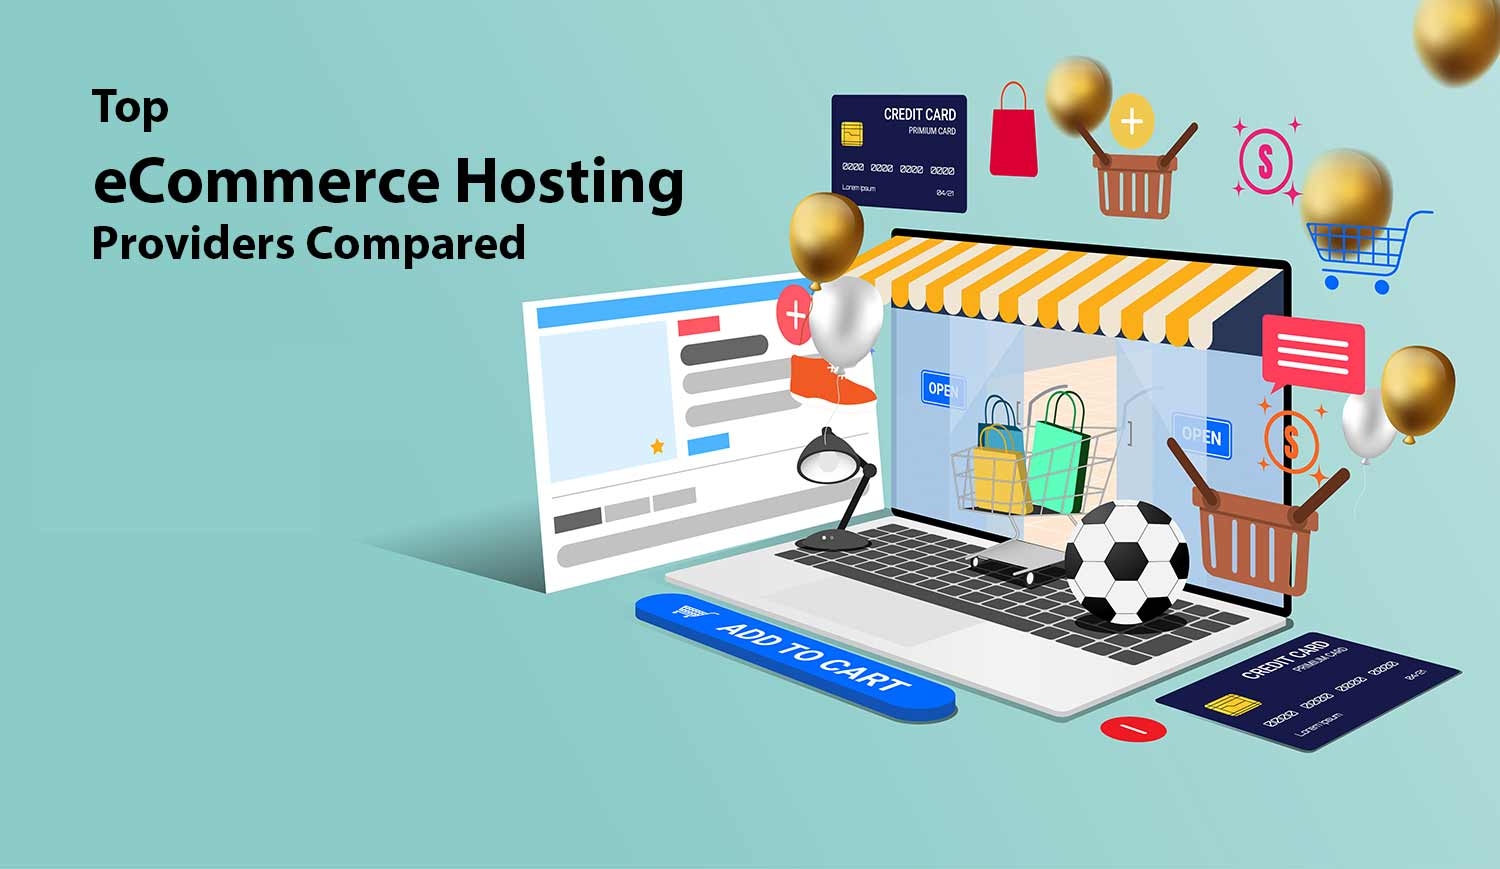 eCommerce hosting providers compared